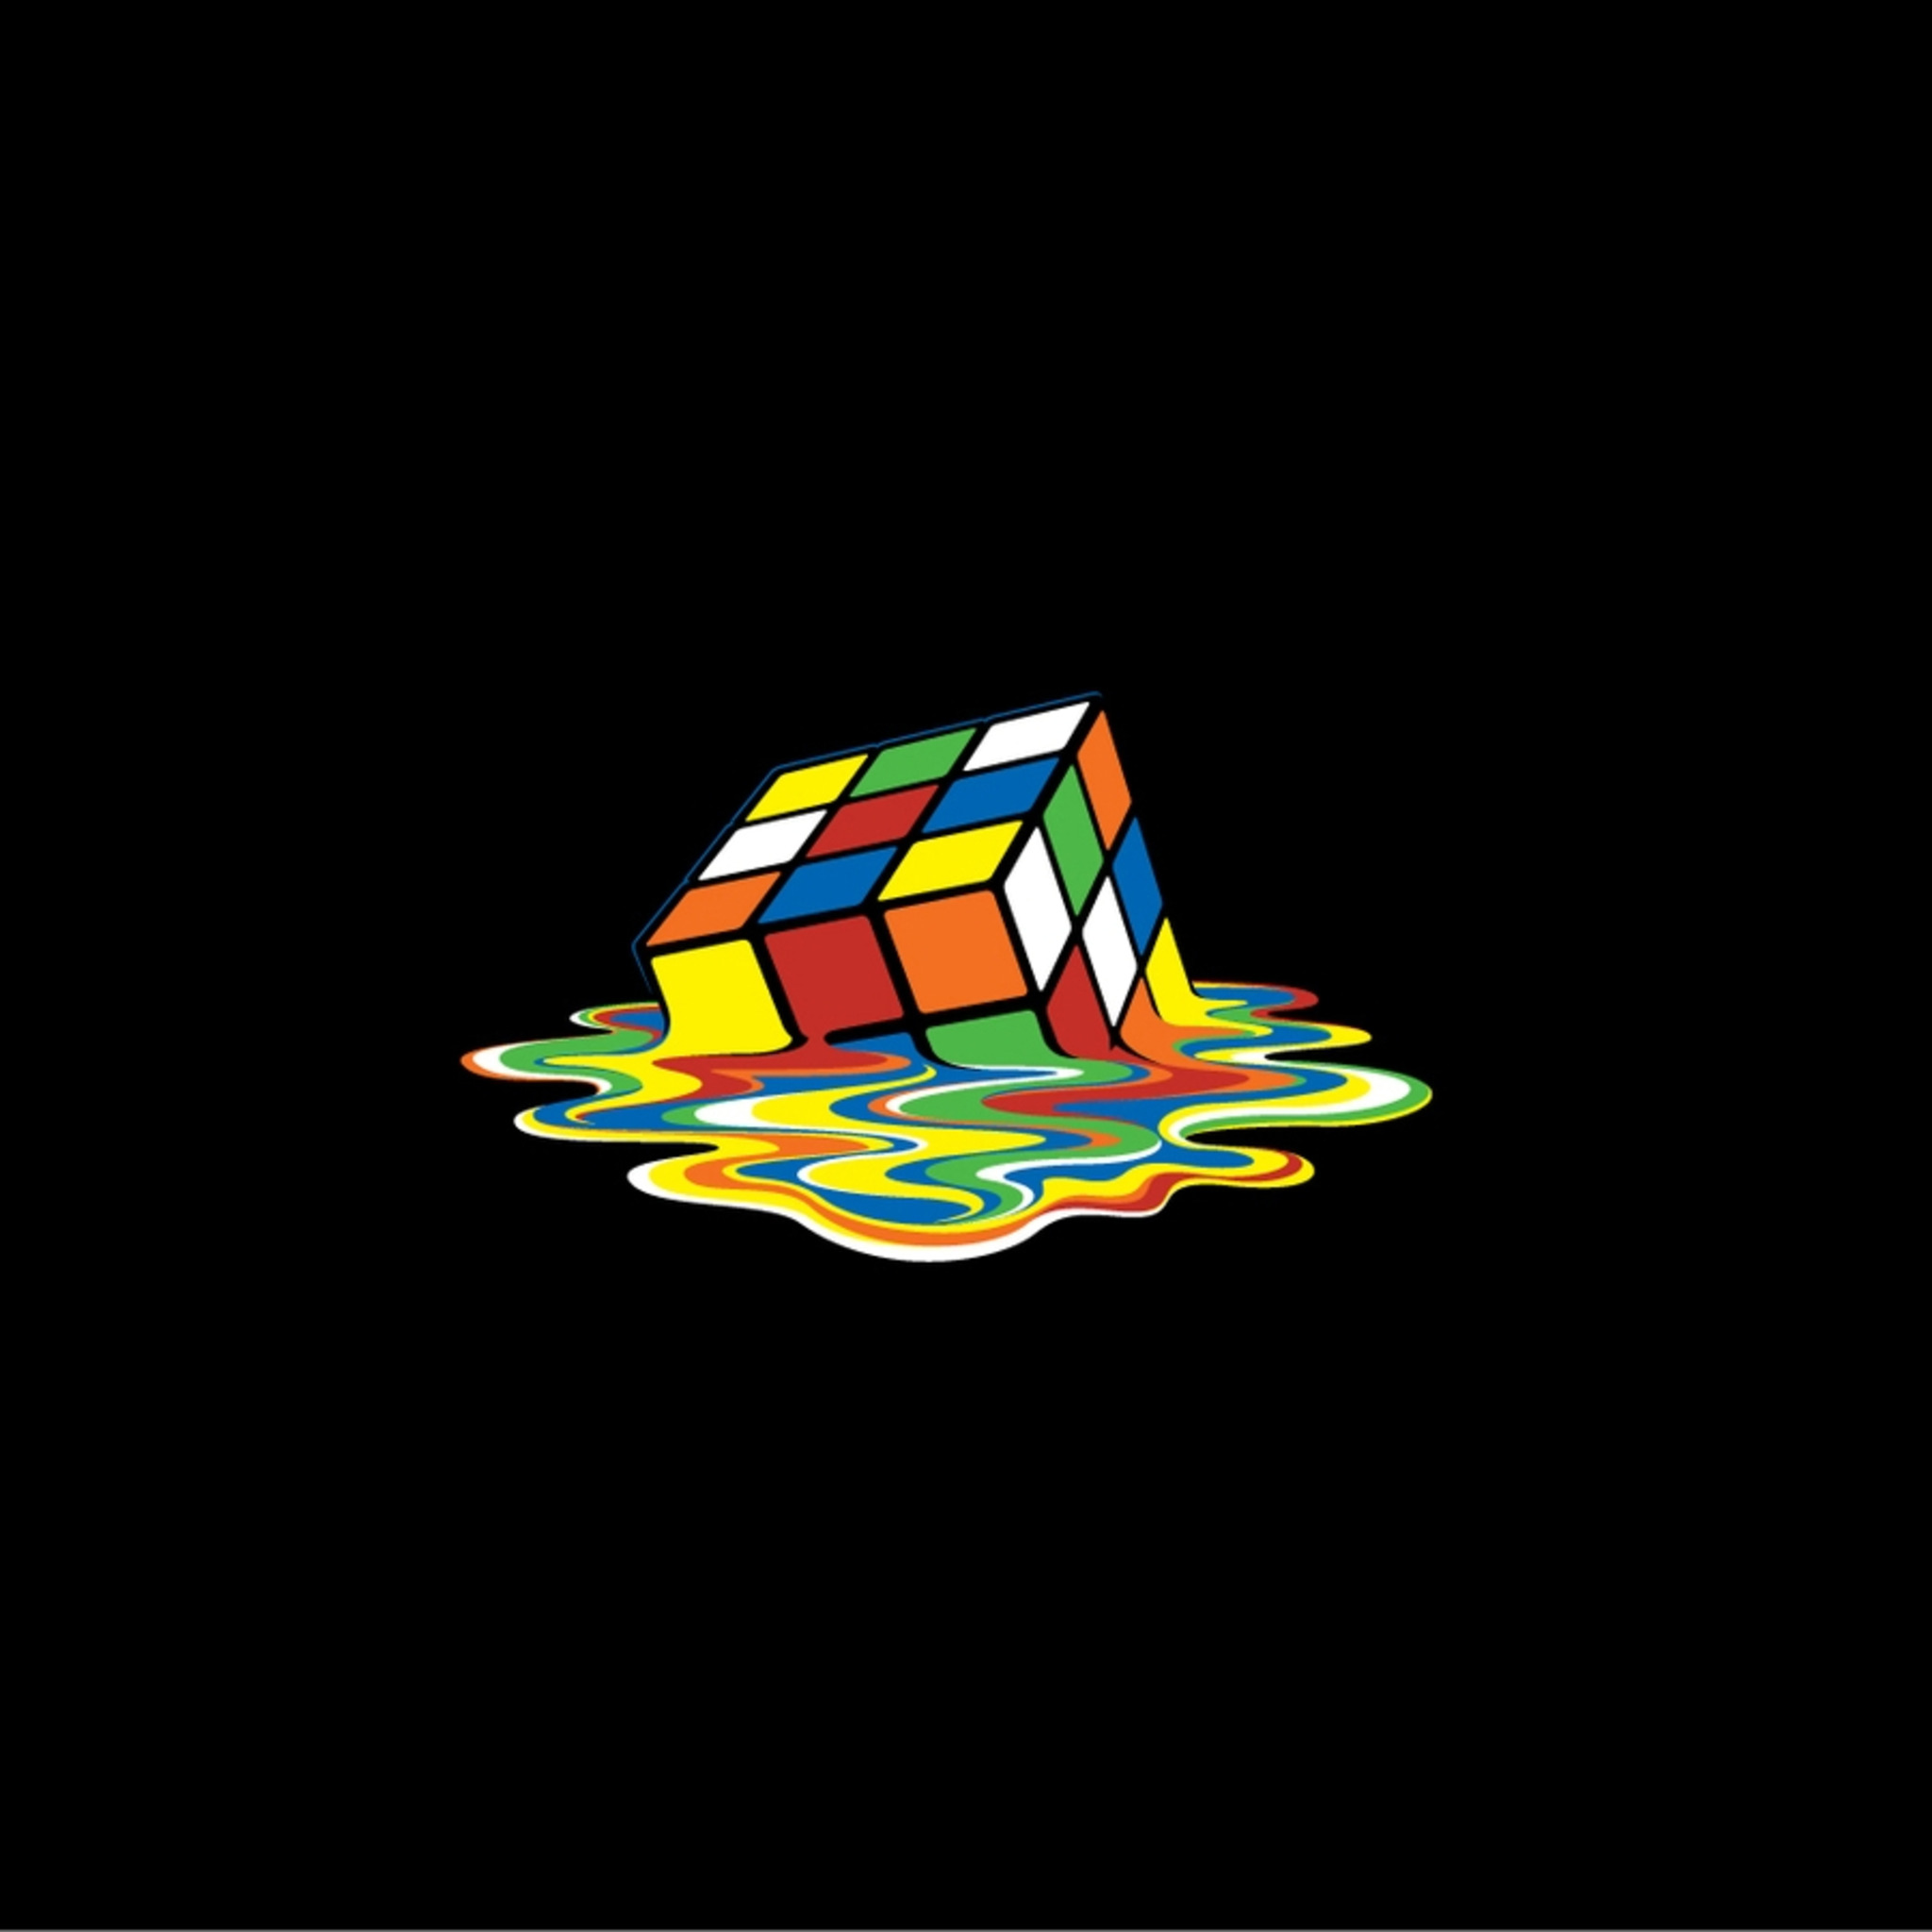 Mobile Wallpaper Cute Love 2048x2048 Rubiks Cube 2 Ipad Air Hd 4k Wallpapers Images